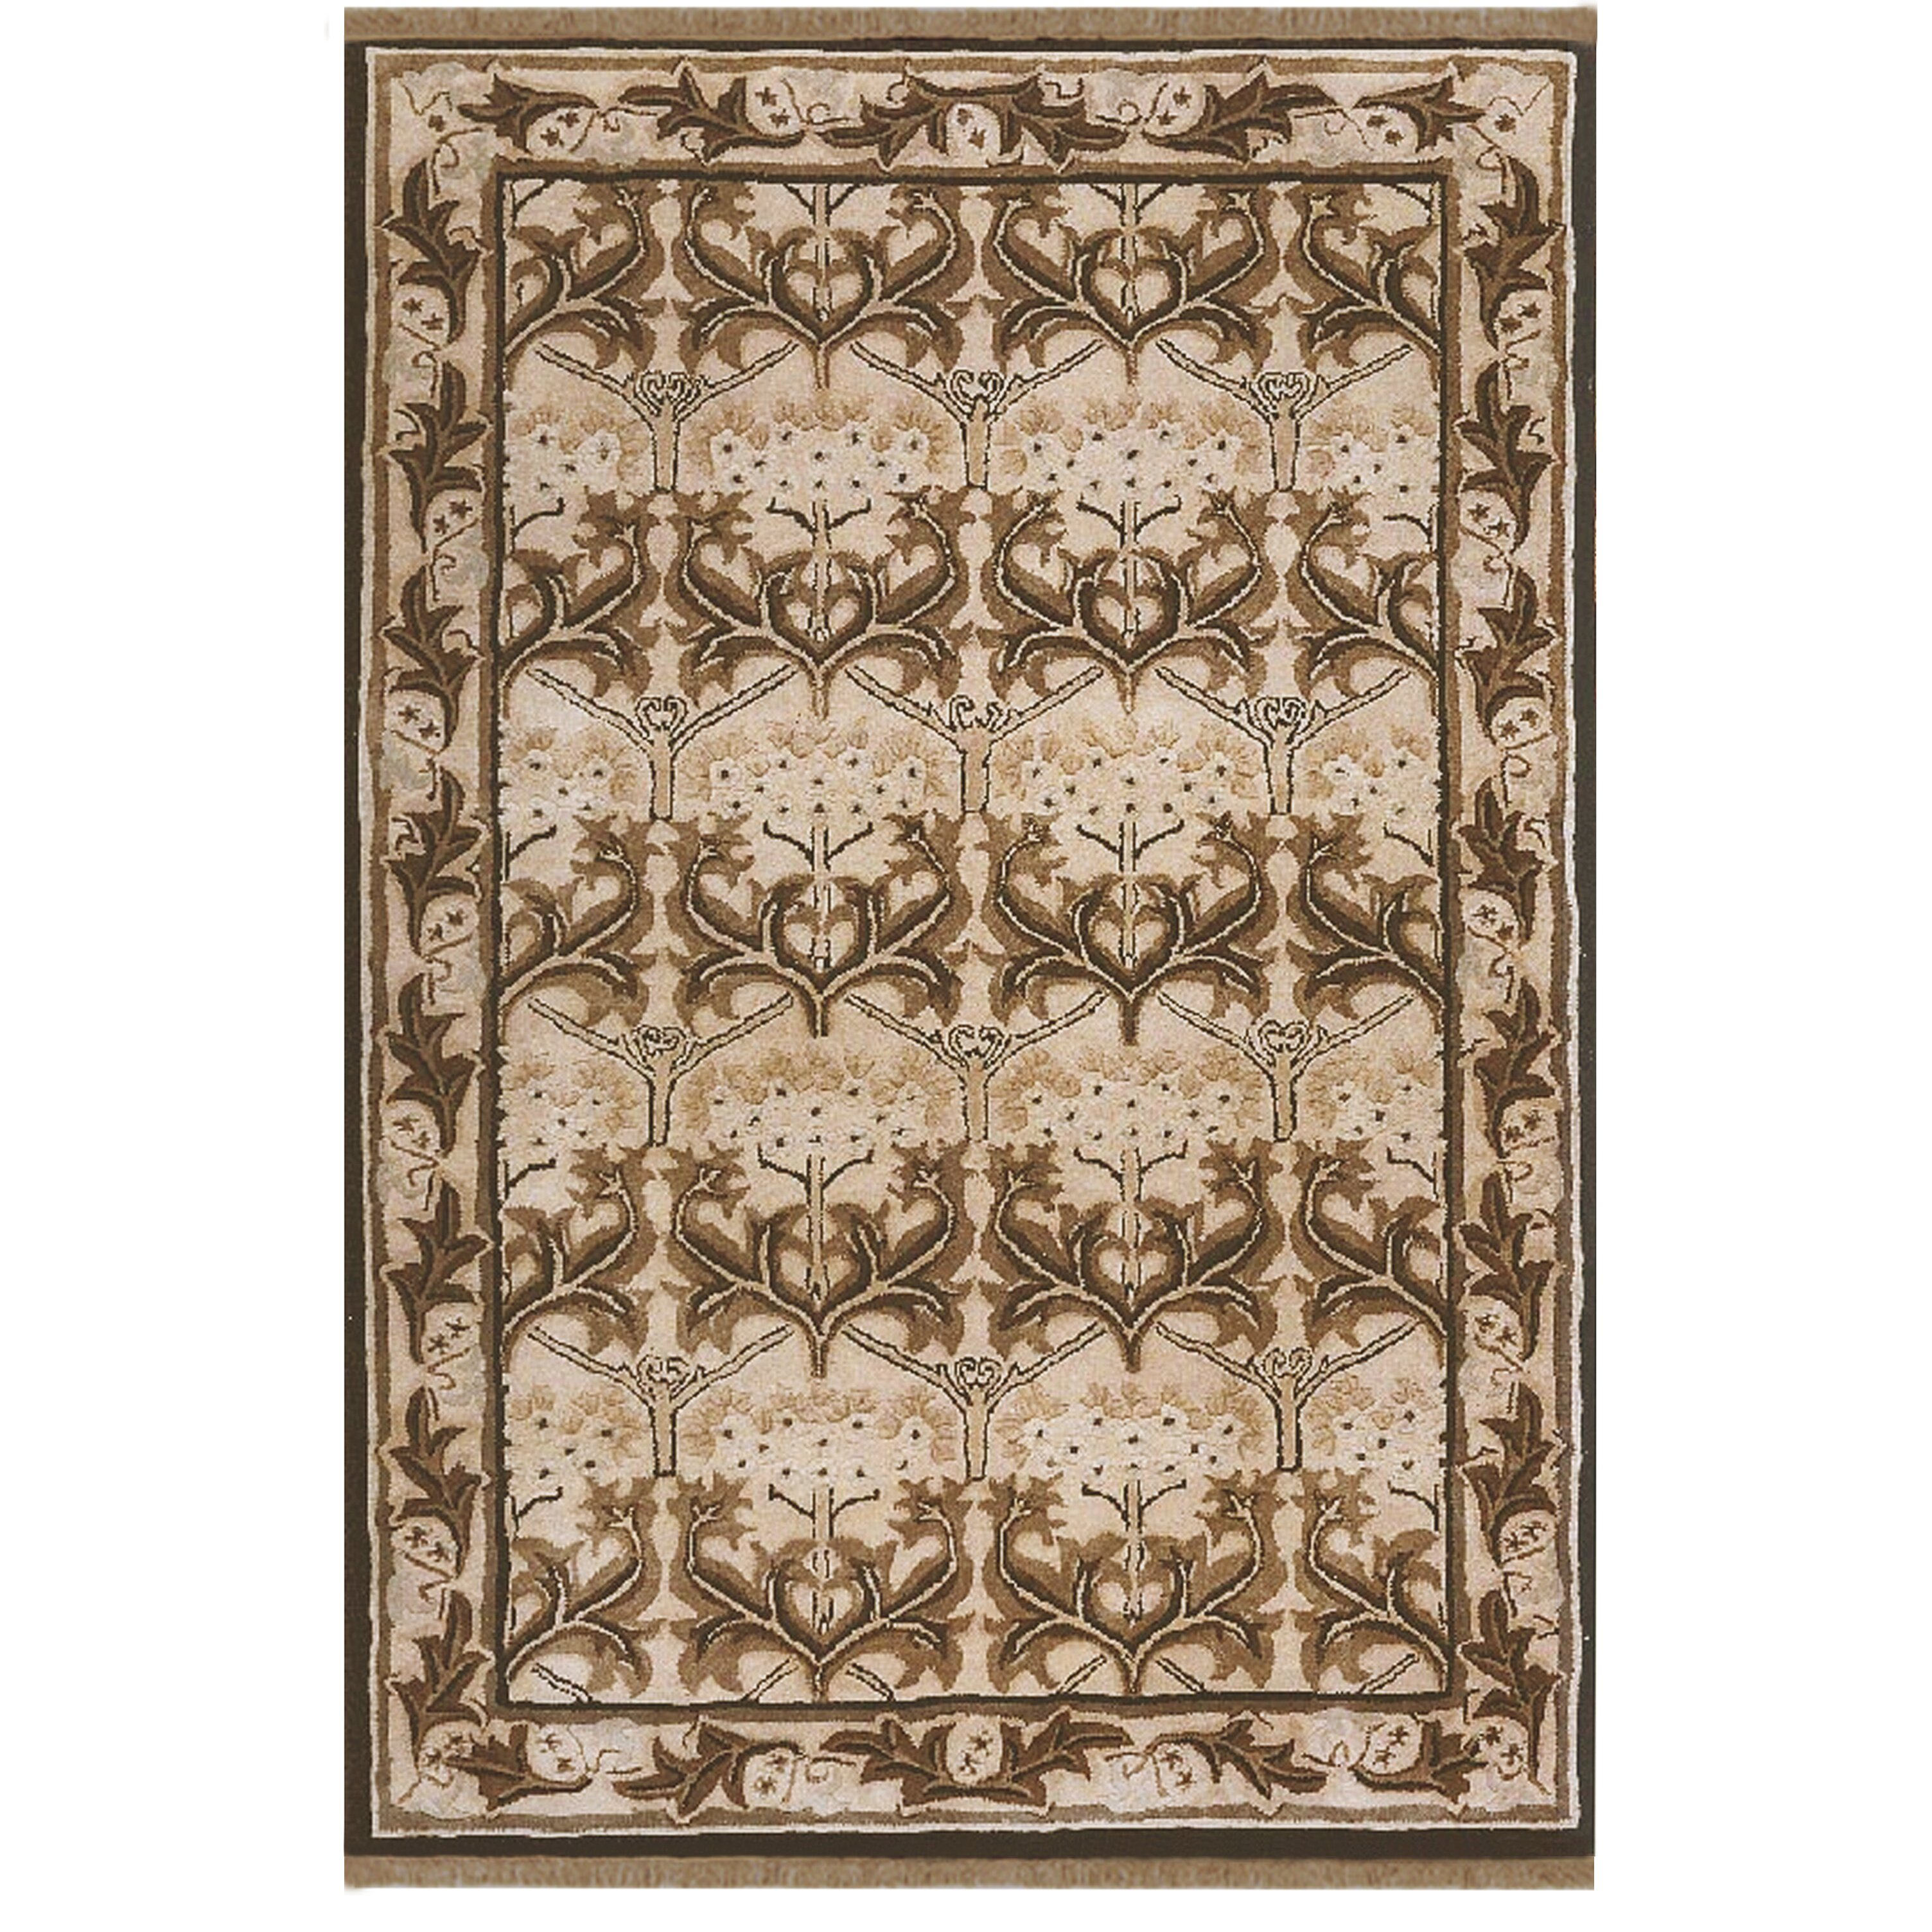 American Home Rug Co American Home Classic Arts Craft